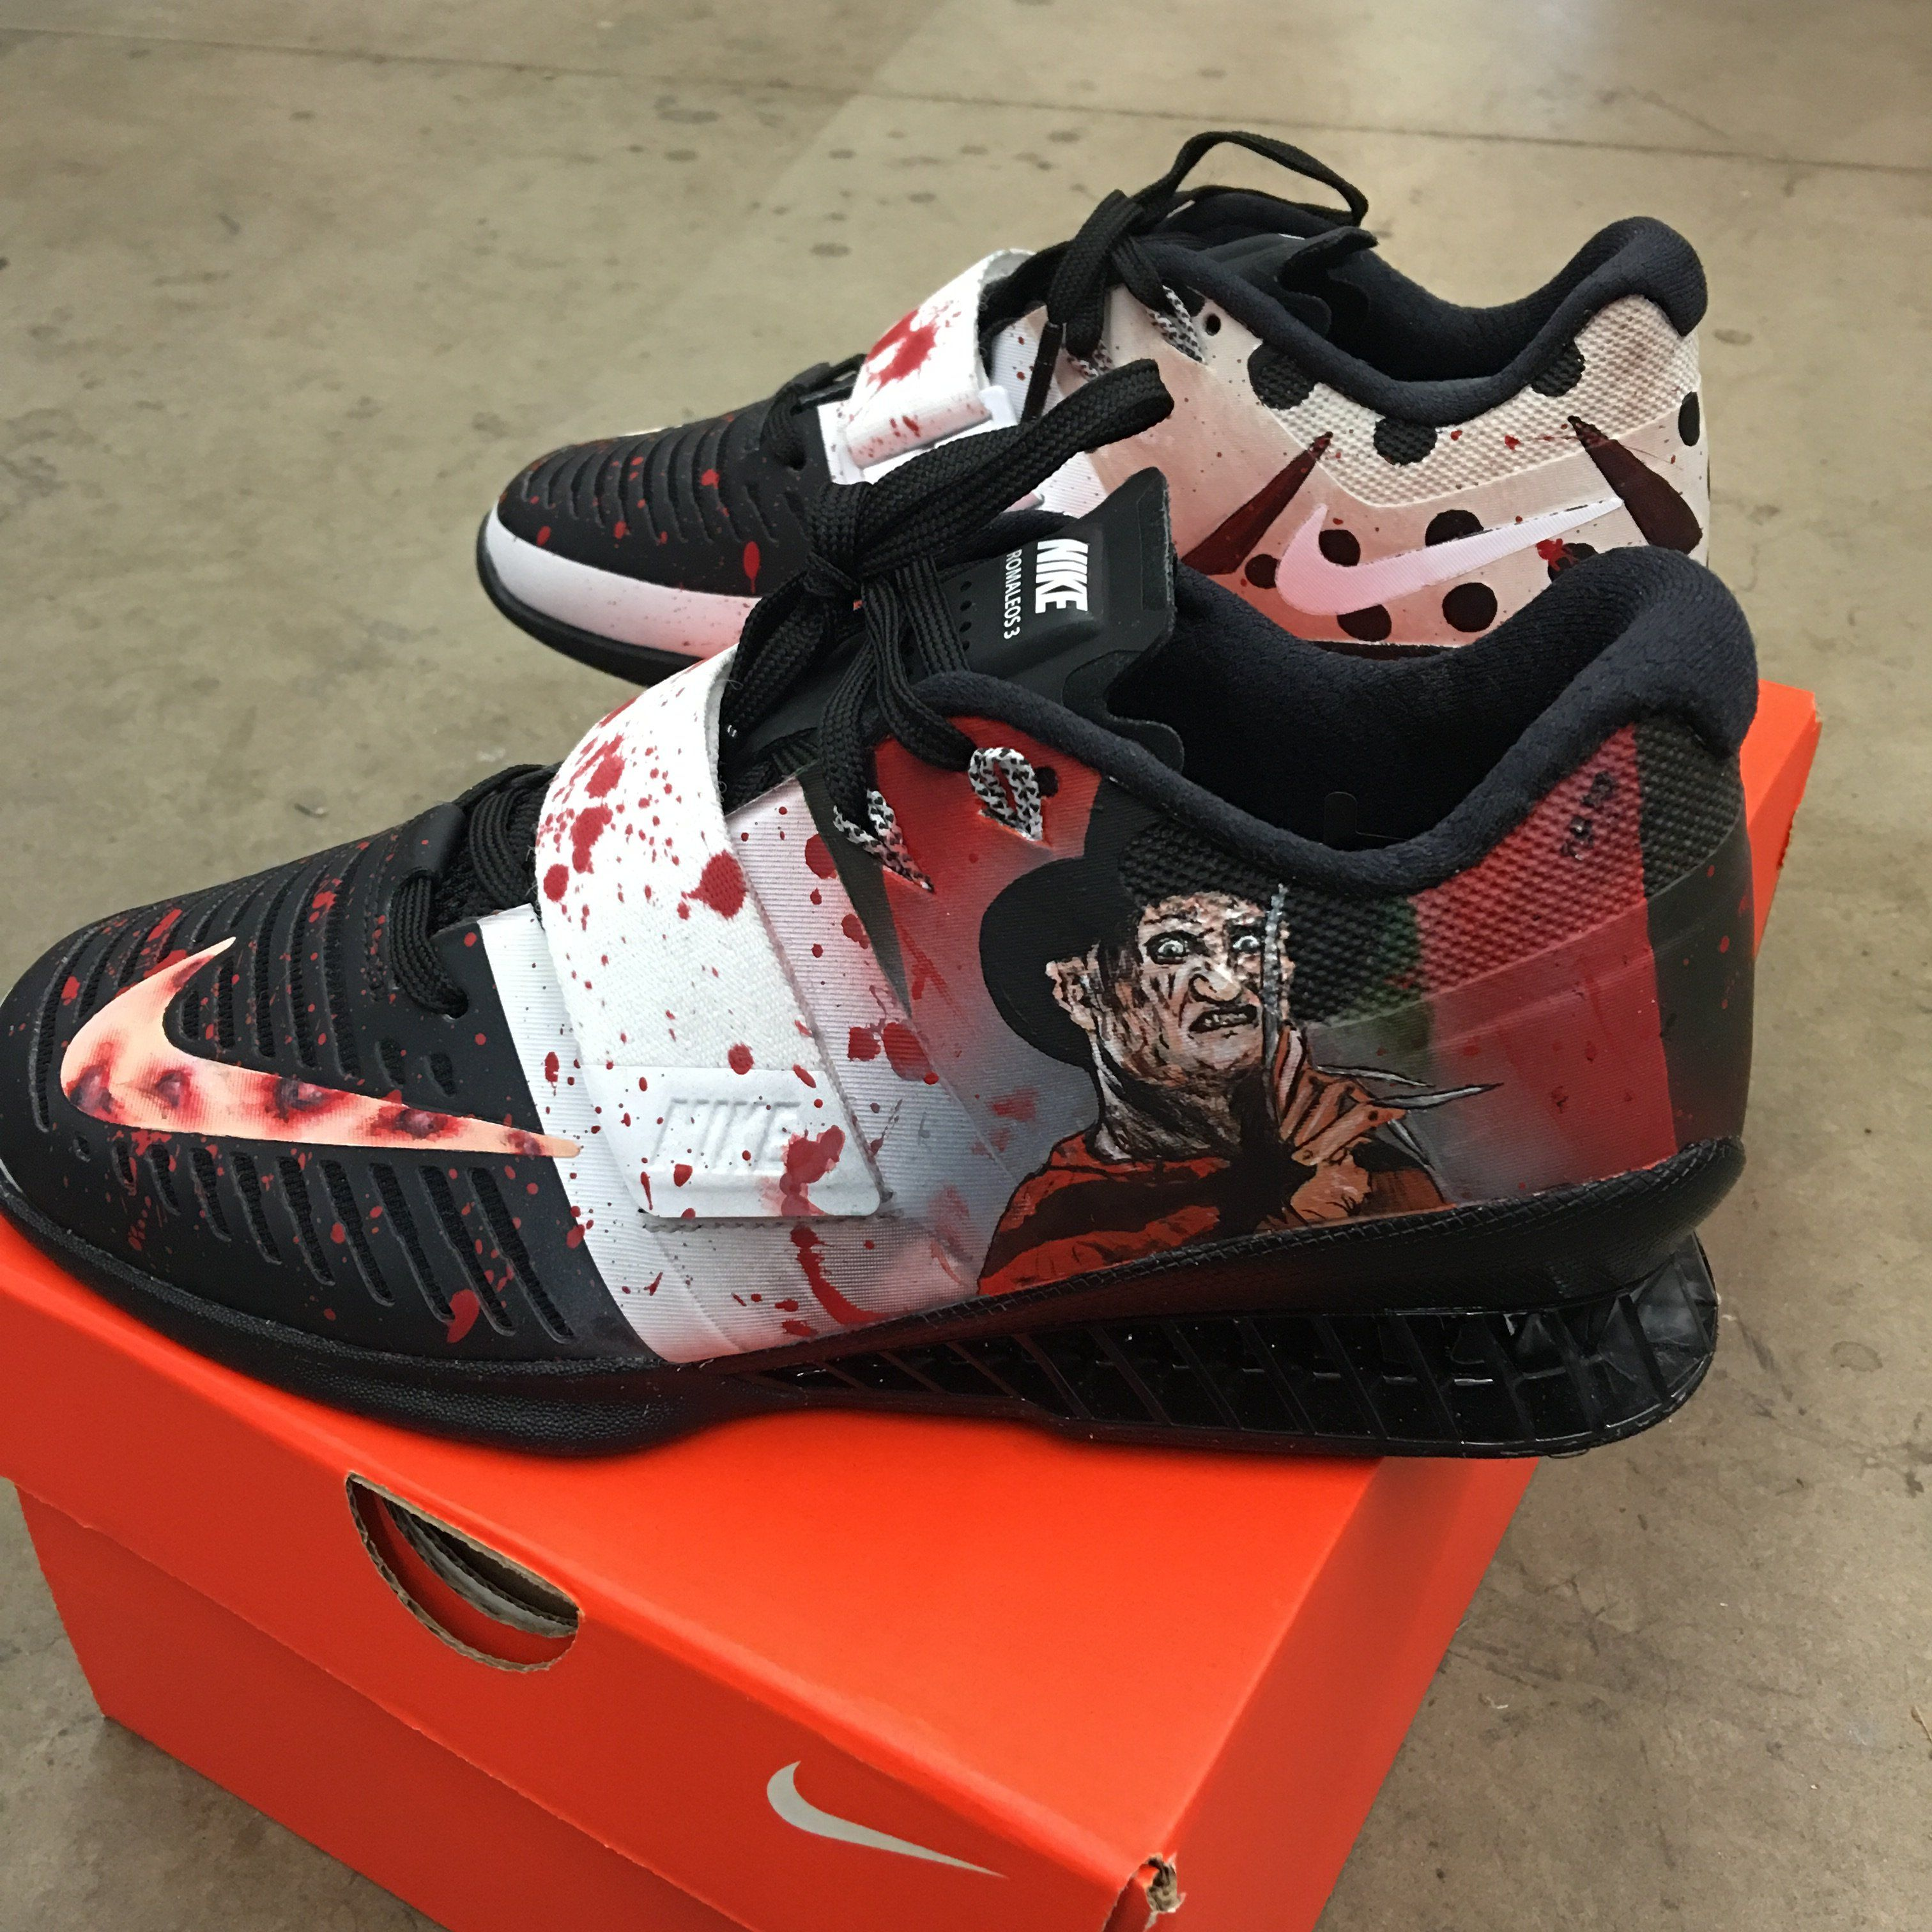 100% authentic 80fc4 e65d0 These custom hand painted Nike Romaleos 3 are Freddy vs. Jason Theme. One  shoe has the red and green stripes on the heel representing Freddy Kruger s  ...